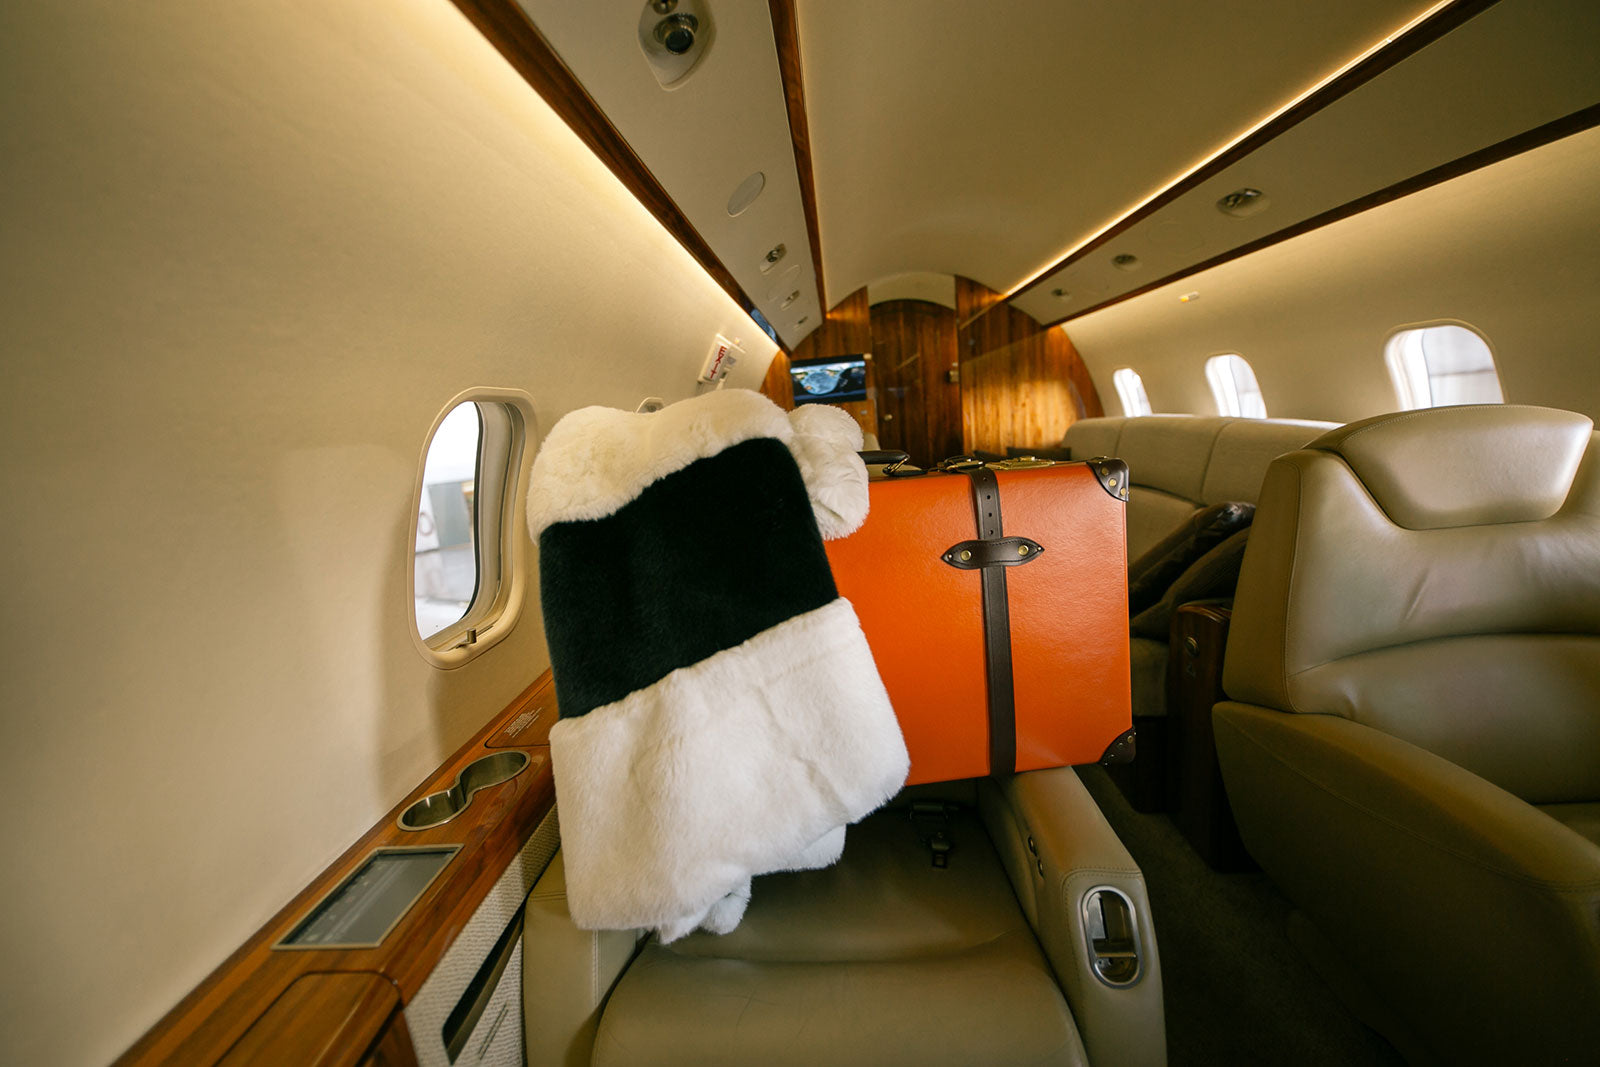 suitcase and fur coat on a plane, secret location concept store travel essentials